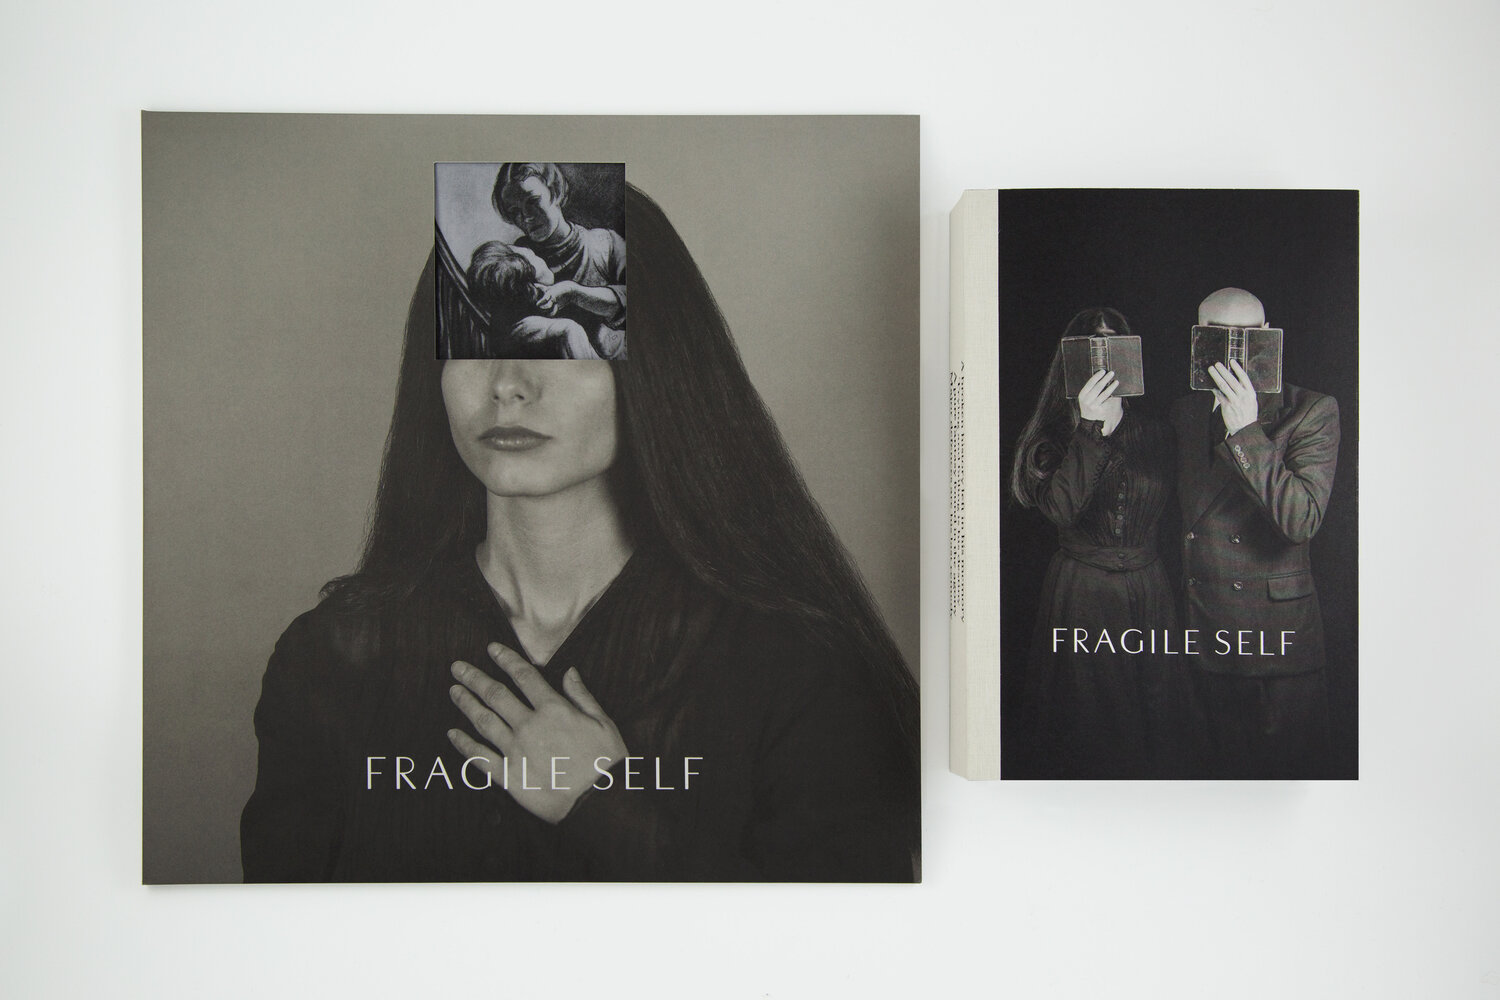 Fragile Self cover